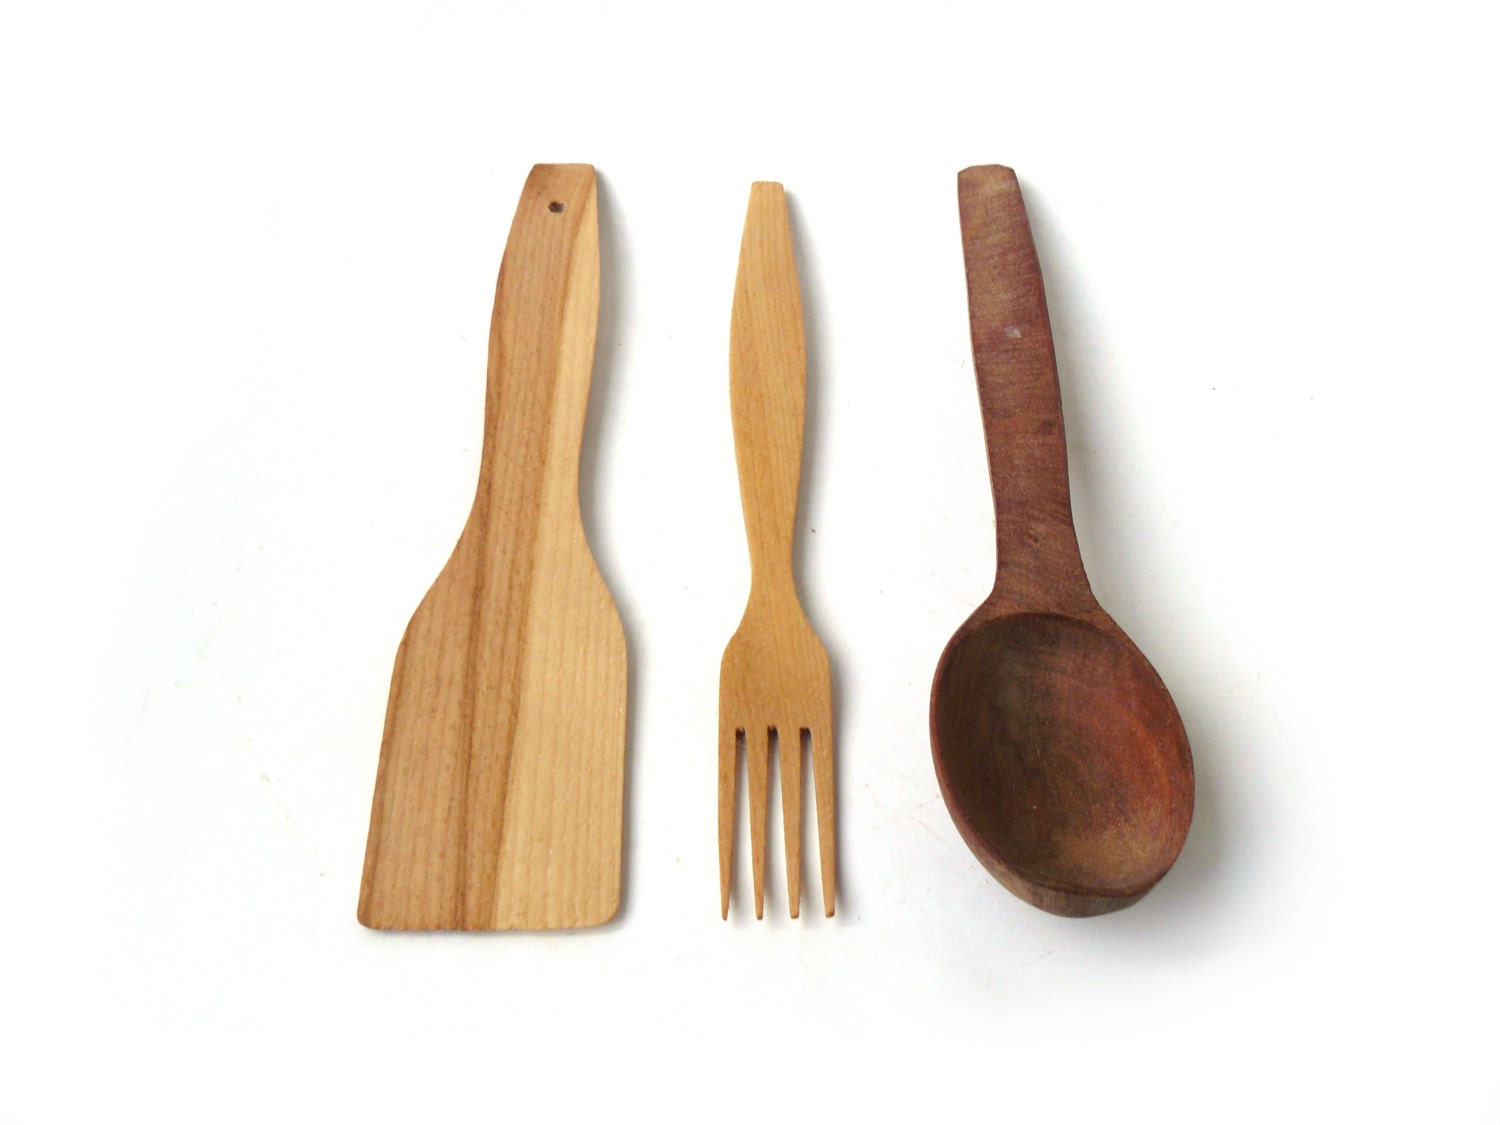 wooden kitchen set fork and spoon blade vintage by nostalgishop. Black Bedroom Furniture Sets. Home Design Ideas